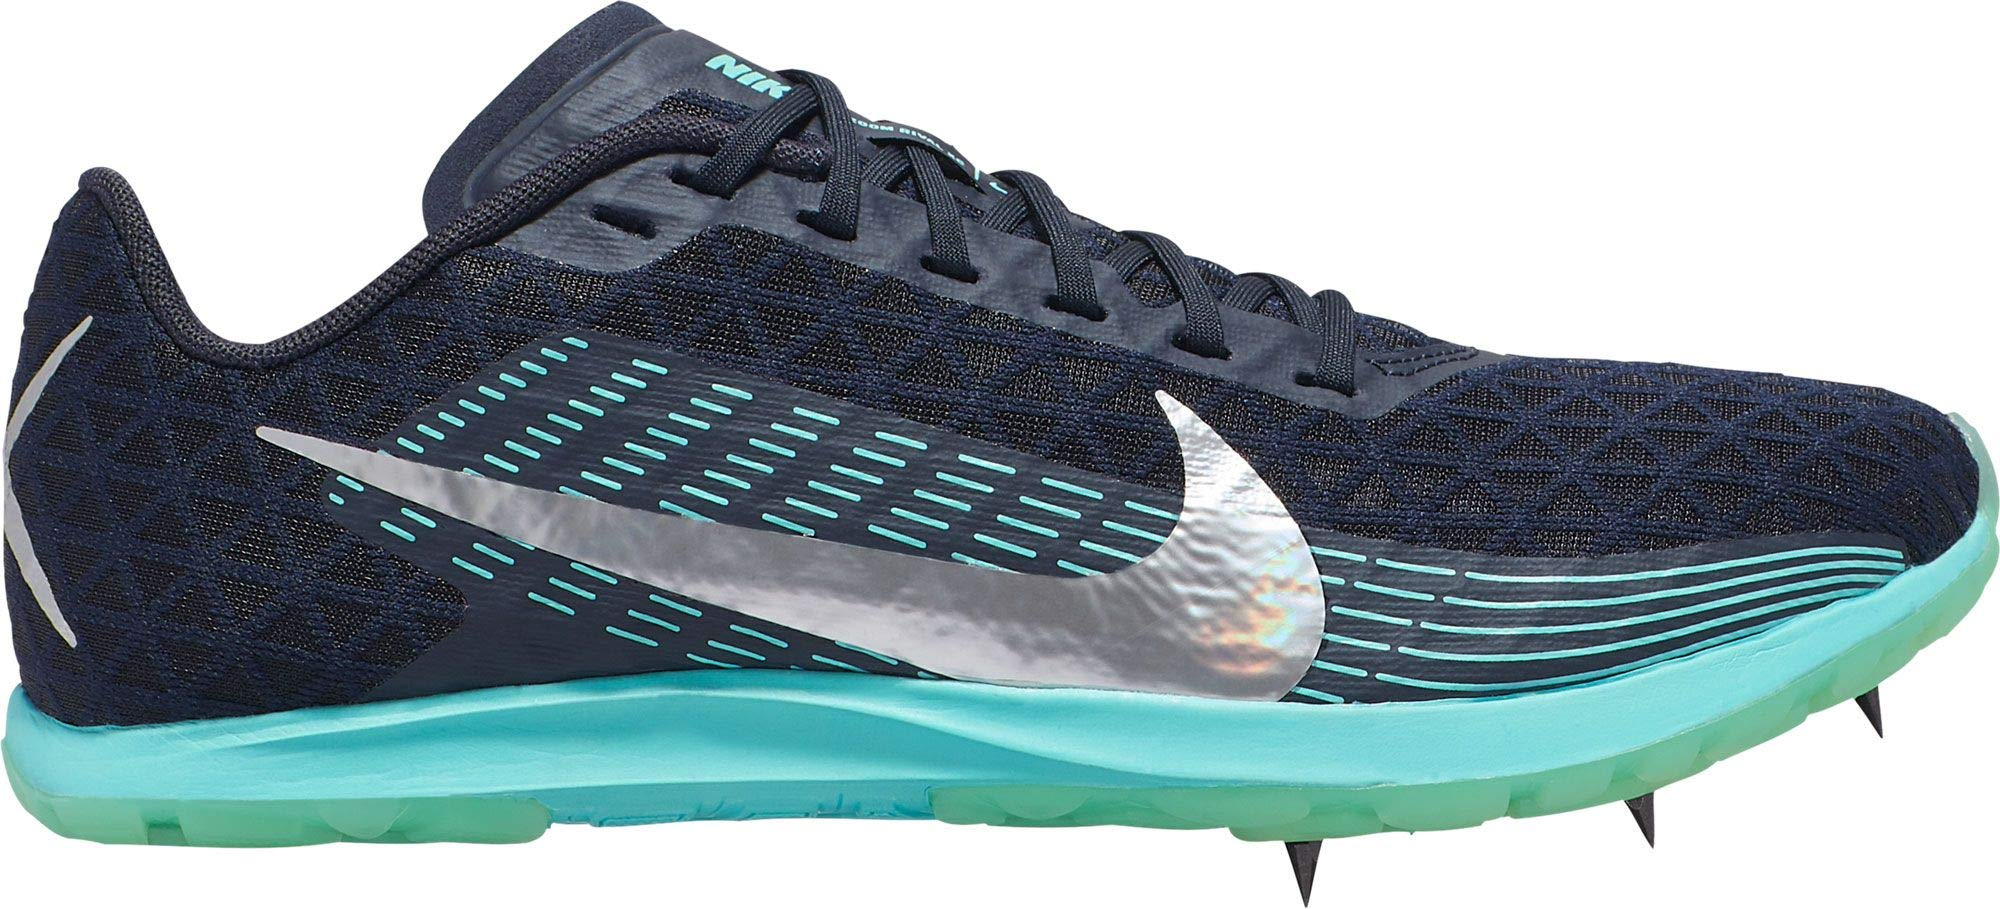 Nike Women's Zoom Rival XC 2019 Cross Country Shoes - Obsidian/Metallic Silver, 8.5 M US by Nike